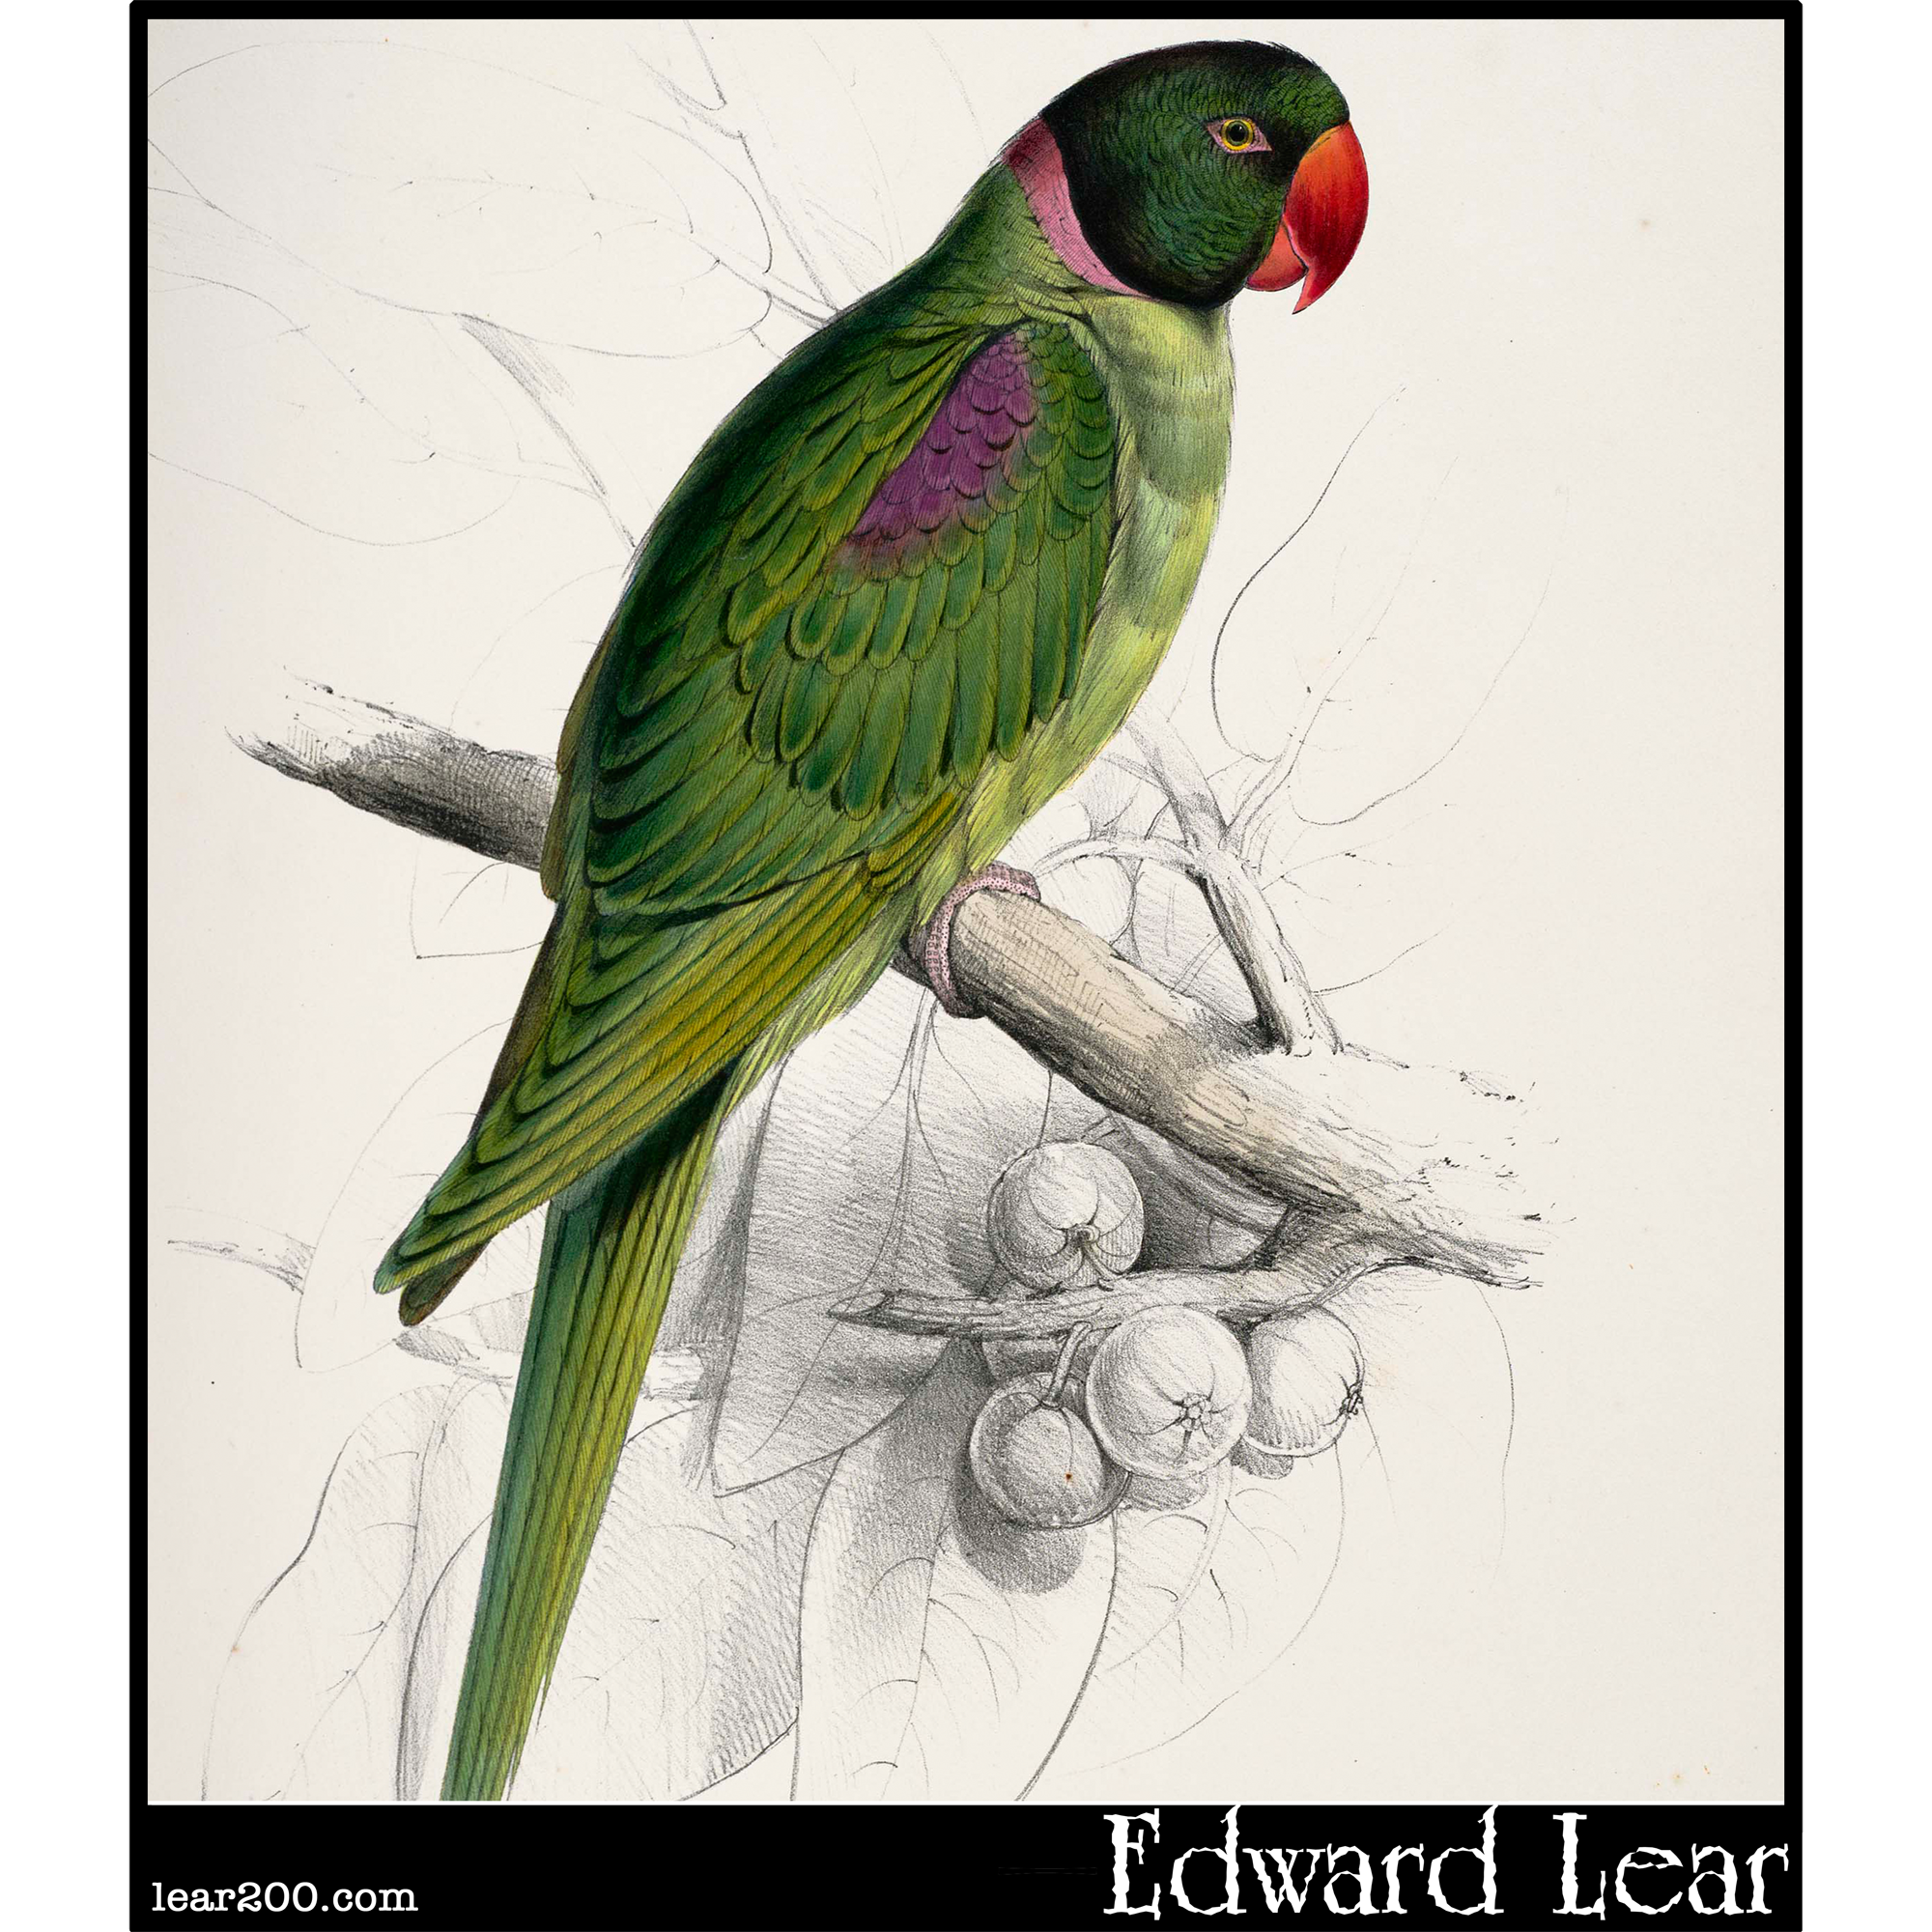 Palaeornis cucullatus, the Hooded Parakeet